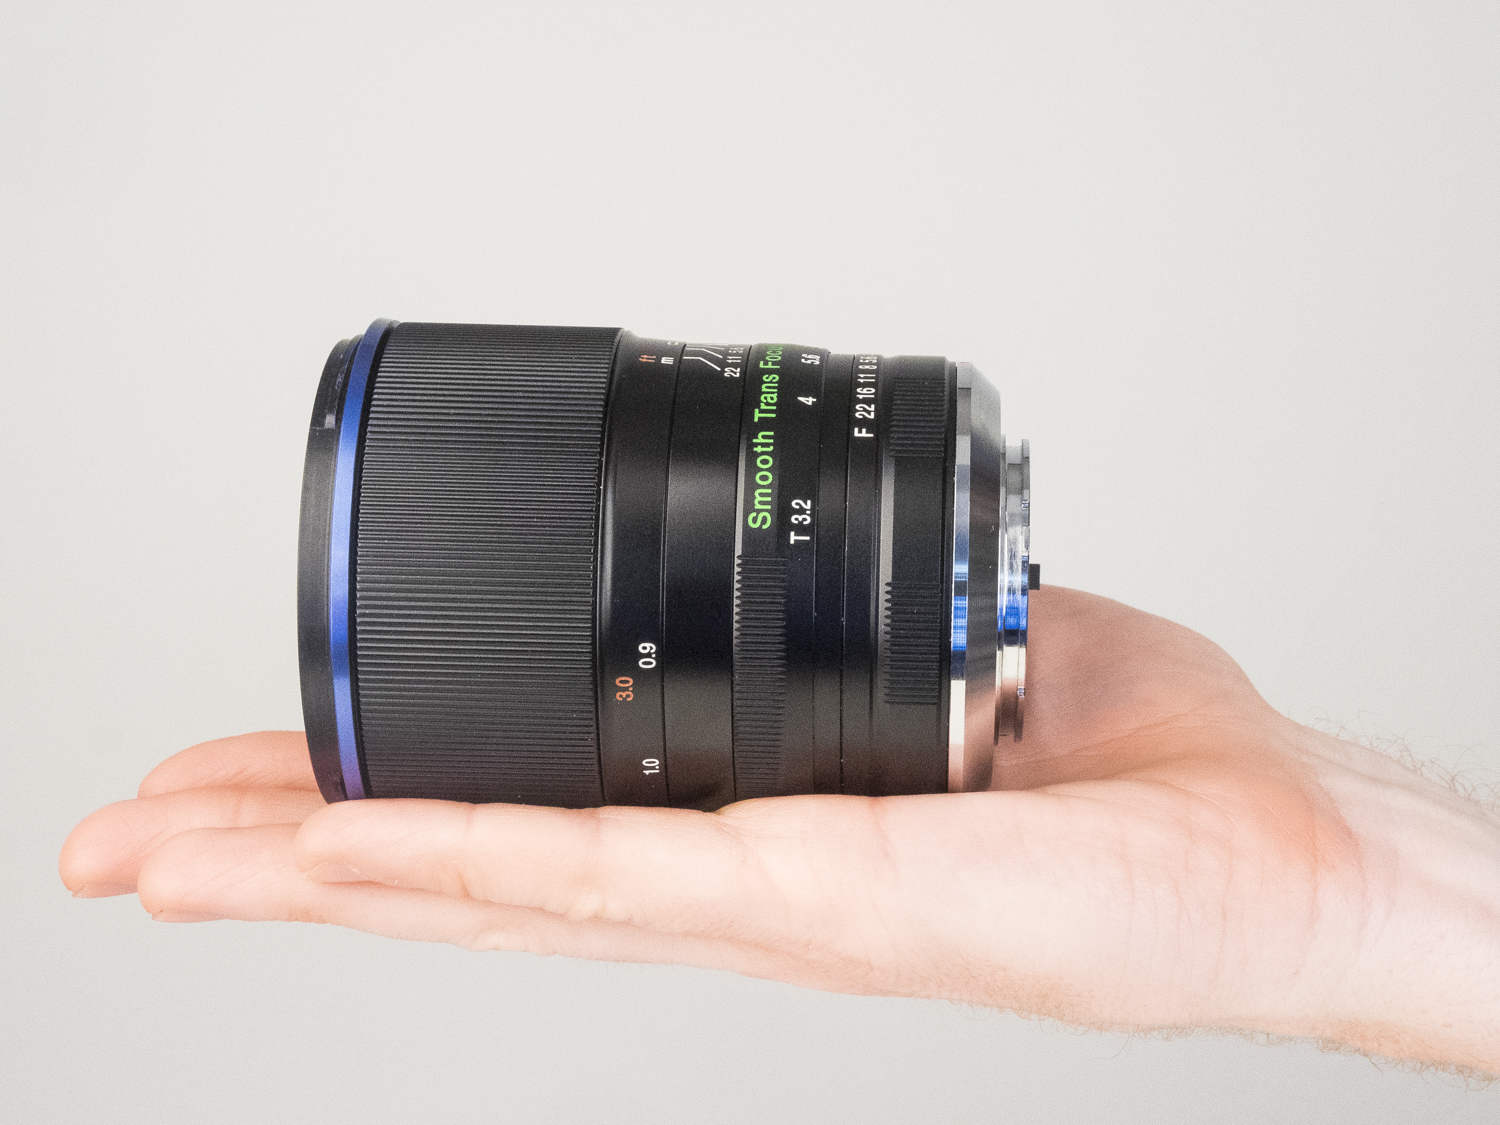 laowa 105mm f2 STF lens product images 06.jpg